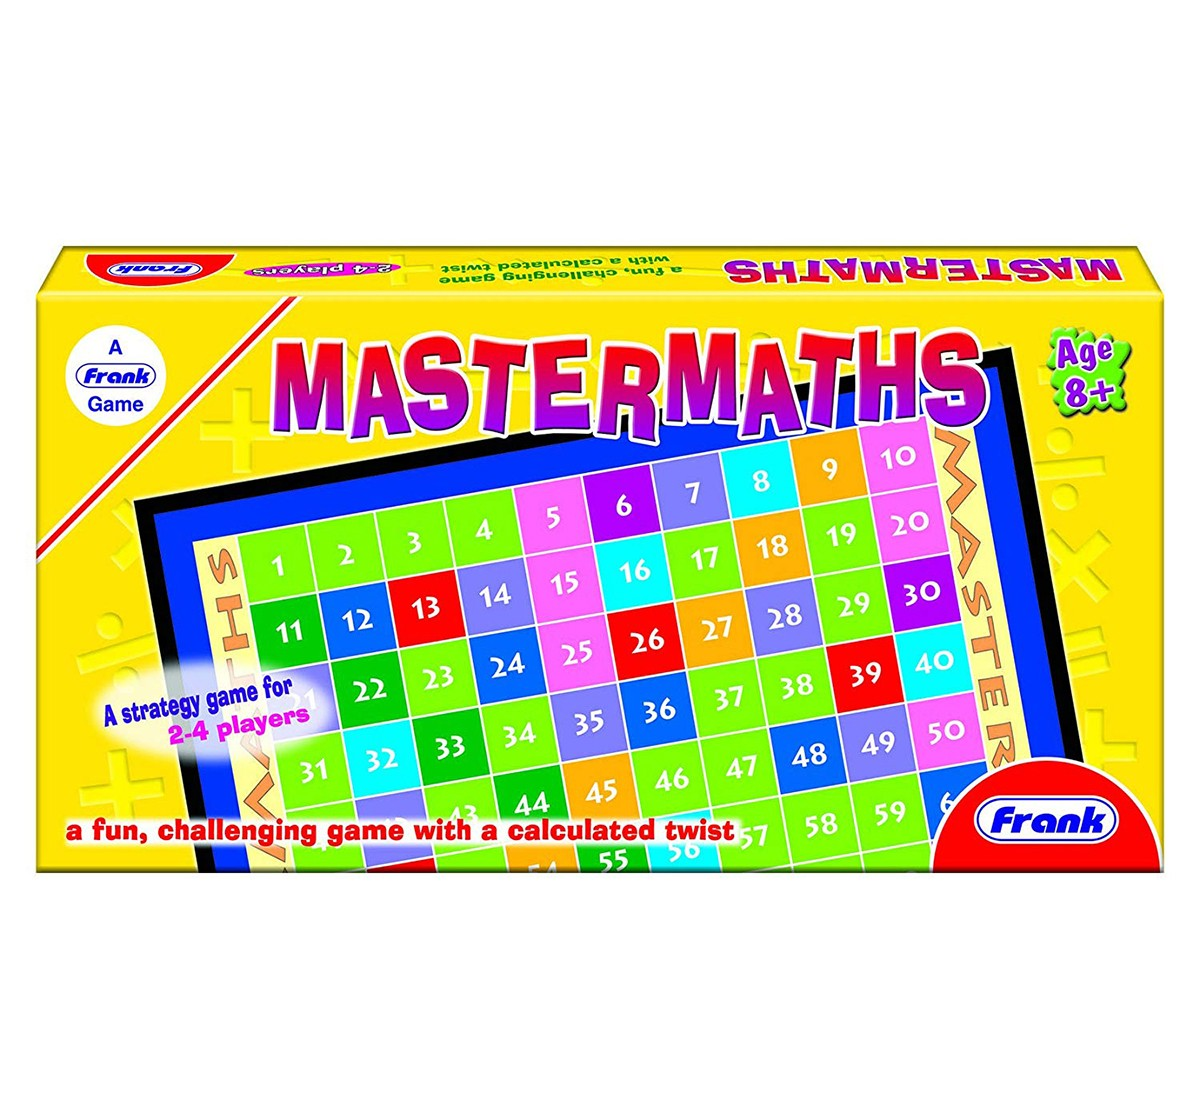 Frank  Mastermaths Board Game For 8 Year Old Kids And Above Puzzles for Kids age 6Y+